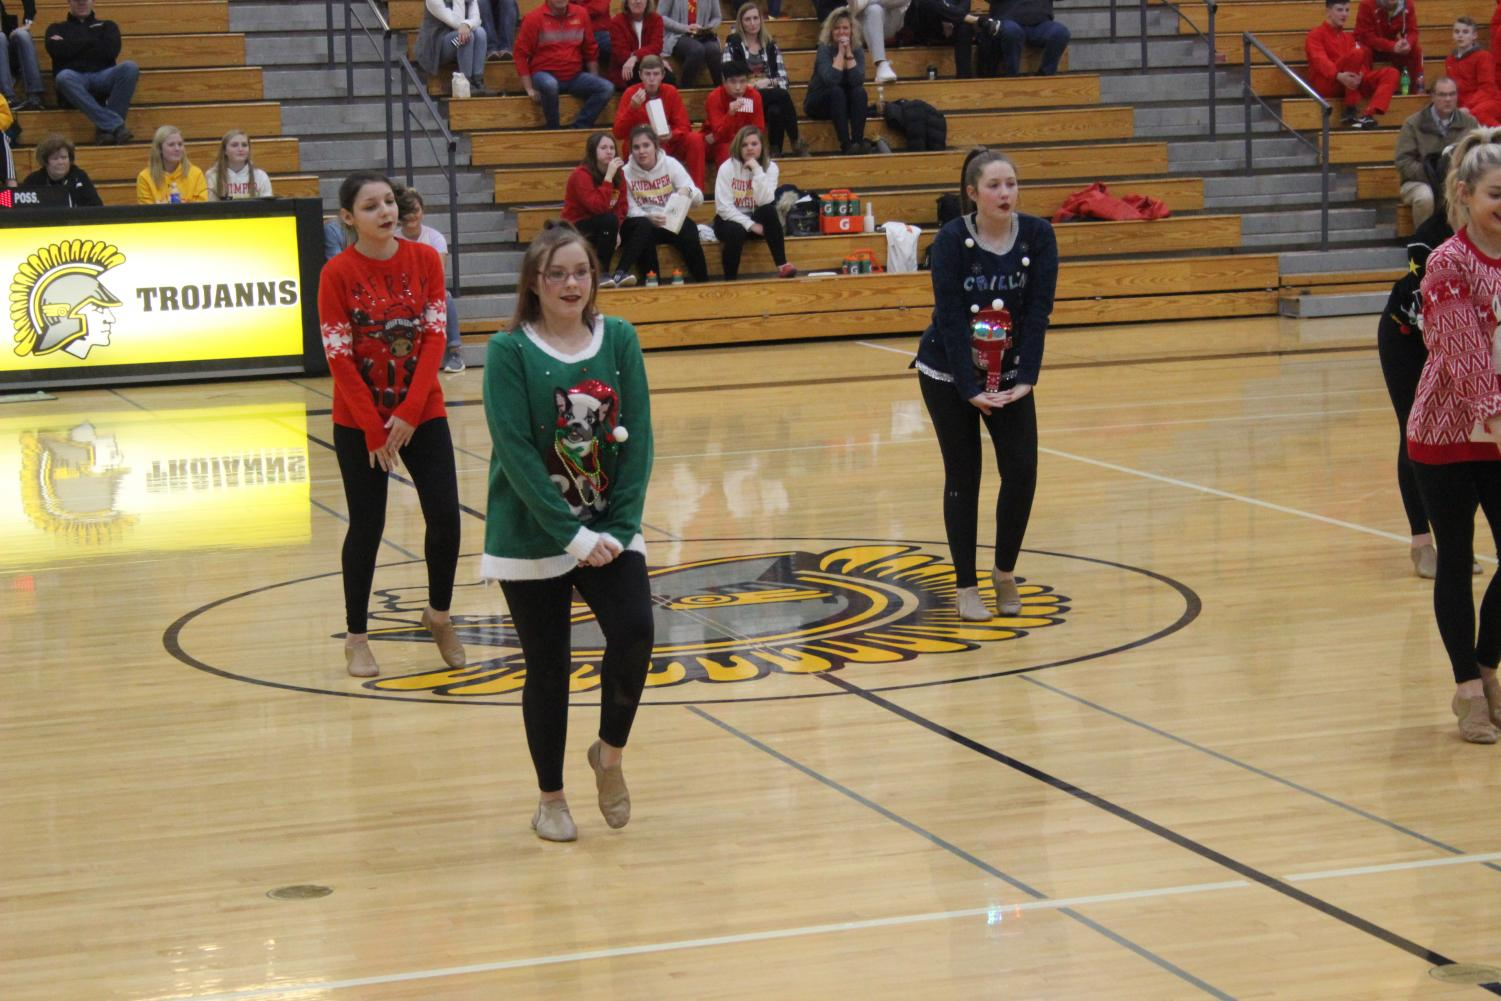 The dance team performs at halftime of the boys' basketball against Kuemper last year. This was the only performance for the dance team last year.